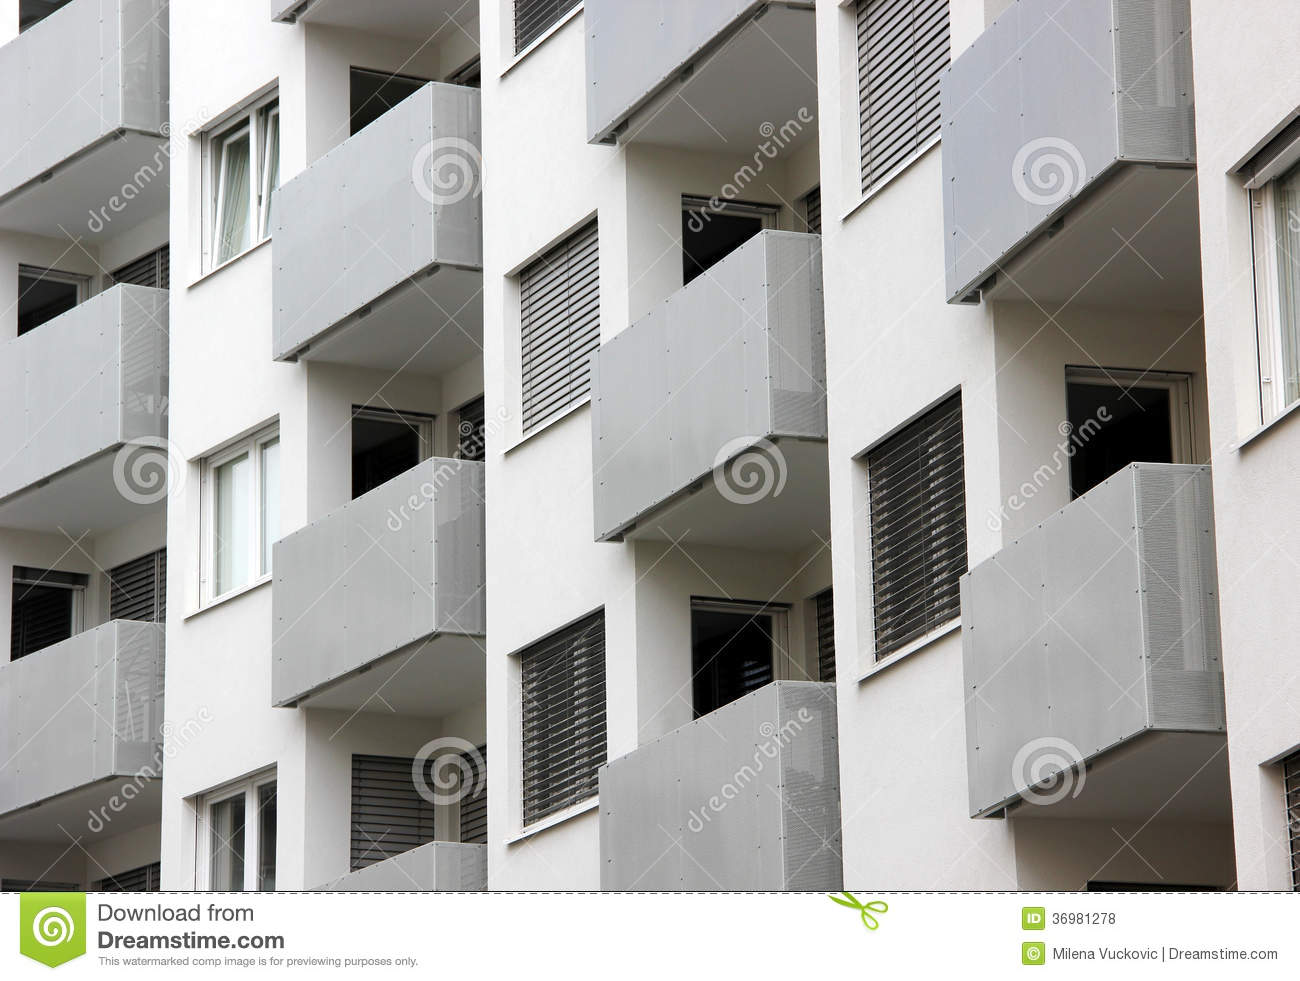 Building balconies in repetition royalty free stock photos for Architectural engineering concepts